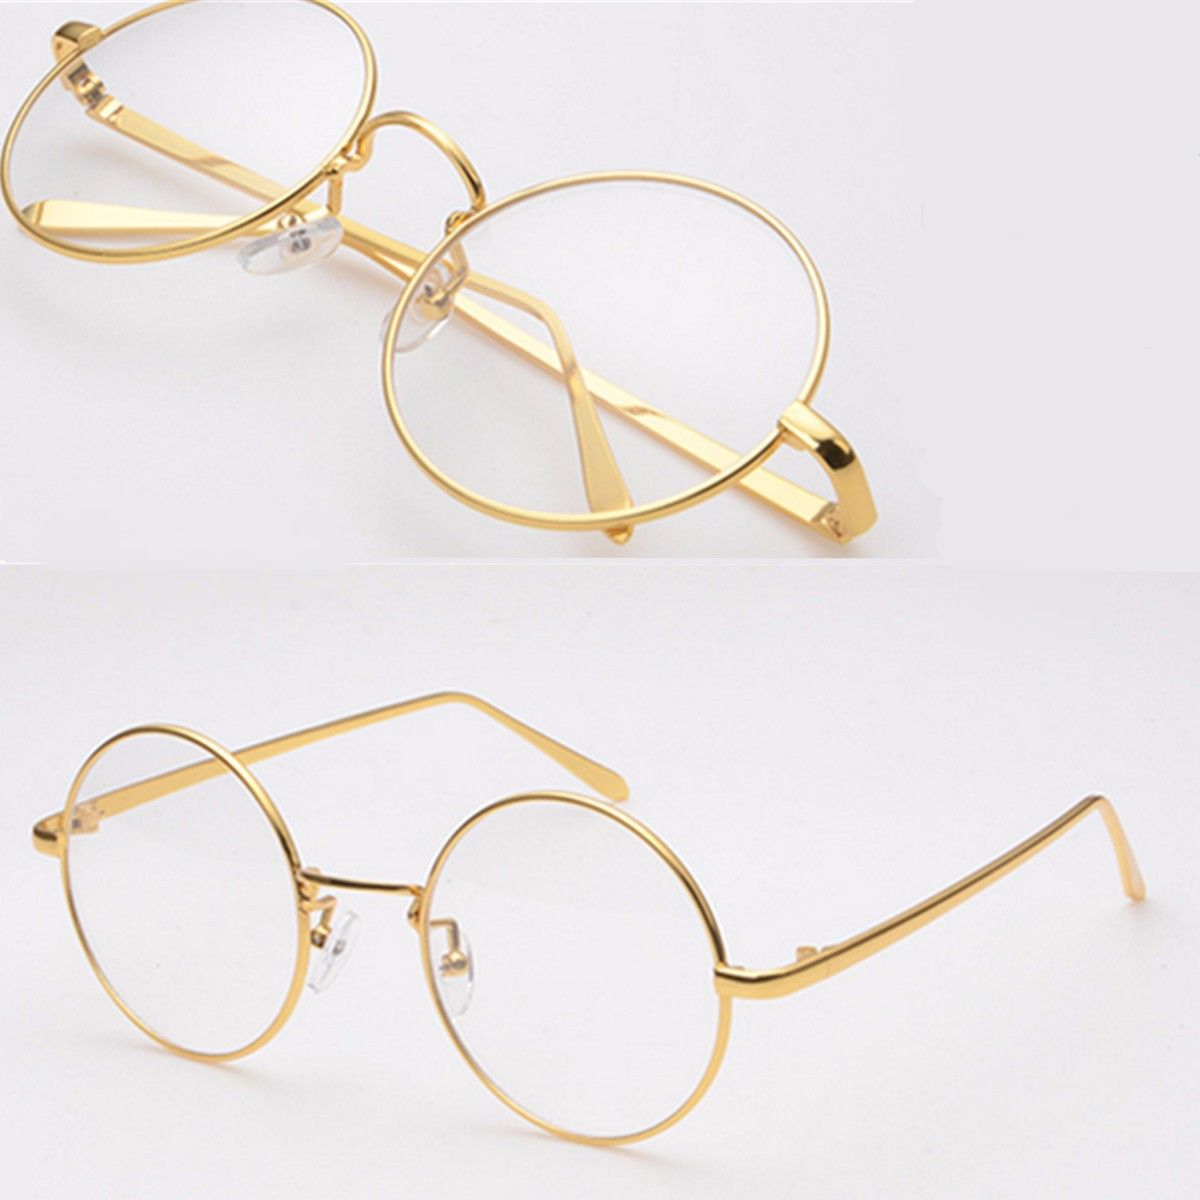 33edc4a1b36 GOLD Metal Vintage Round Eyeglass Frame Clear Lens Full-Rim Glasses ...